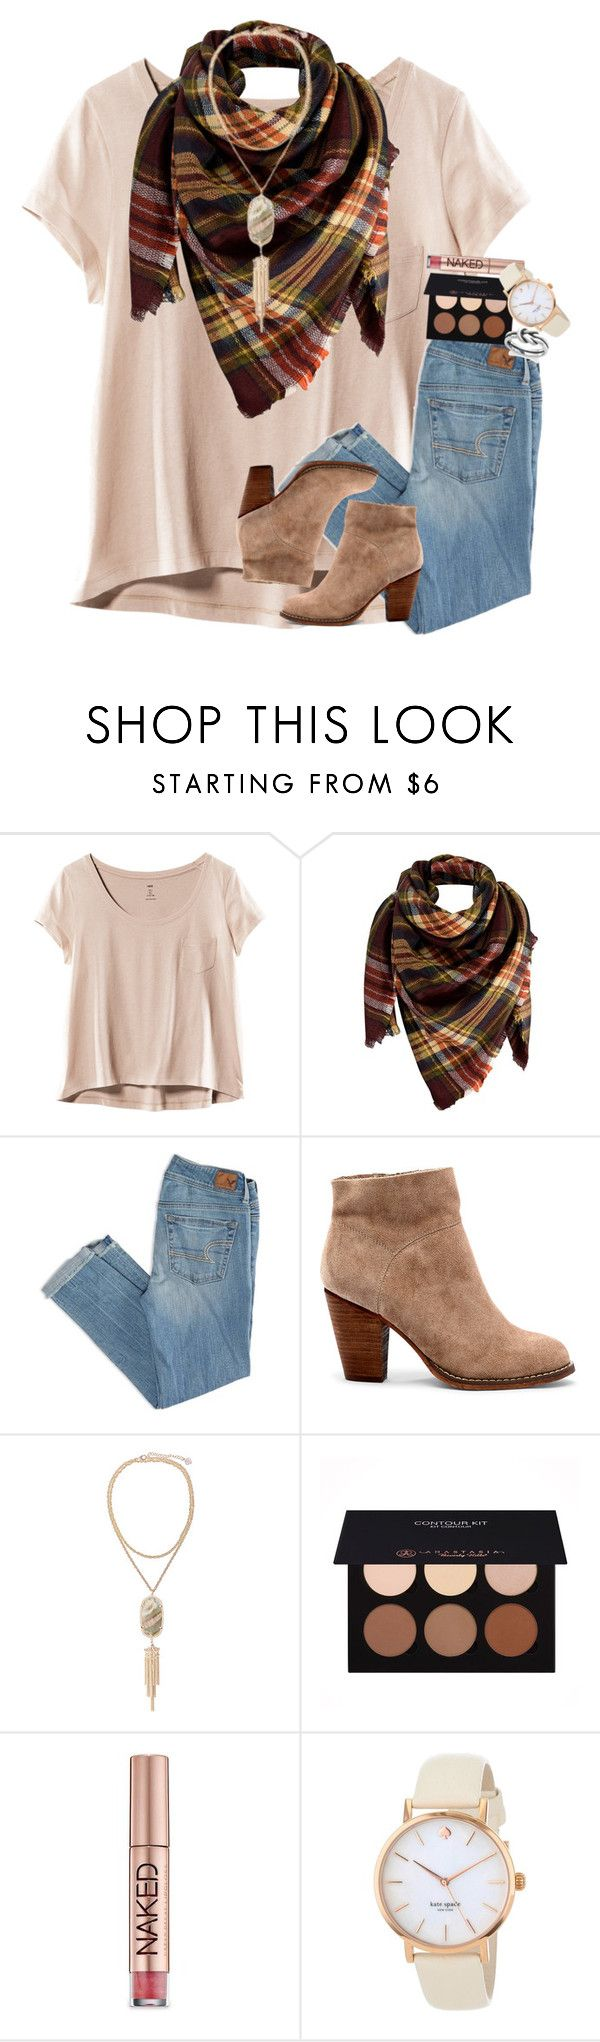 """don't chase people. the right people will come into your life at just the right time."" by ellaswiftie13 ❤ liked on Polyvore featuring H&M, Peach Couture, American Eagle Outfitters, Sole Society, Kendra Scott, Anastasia Beverly Hills, Urban Decay, Kate Spade and Avery"